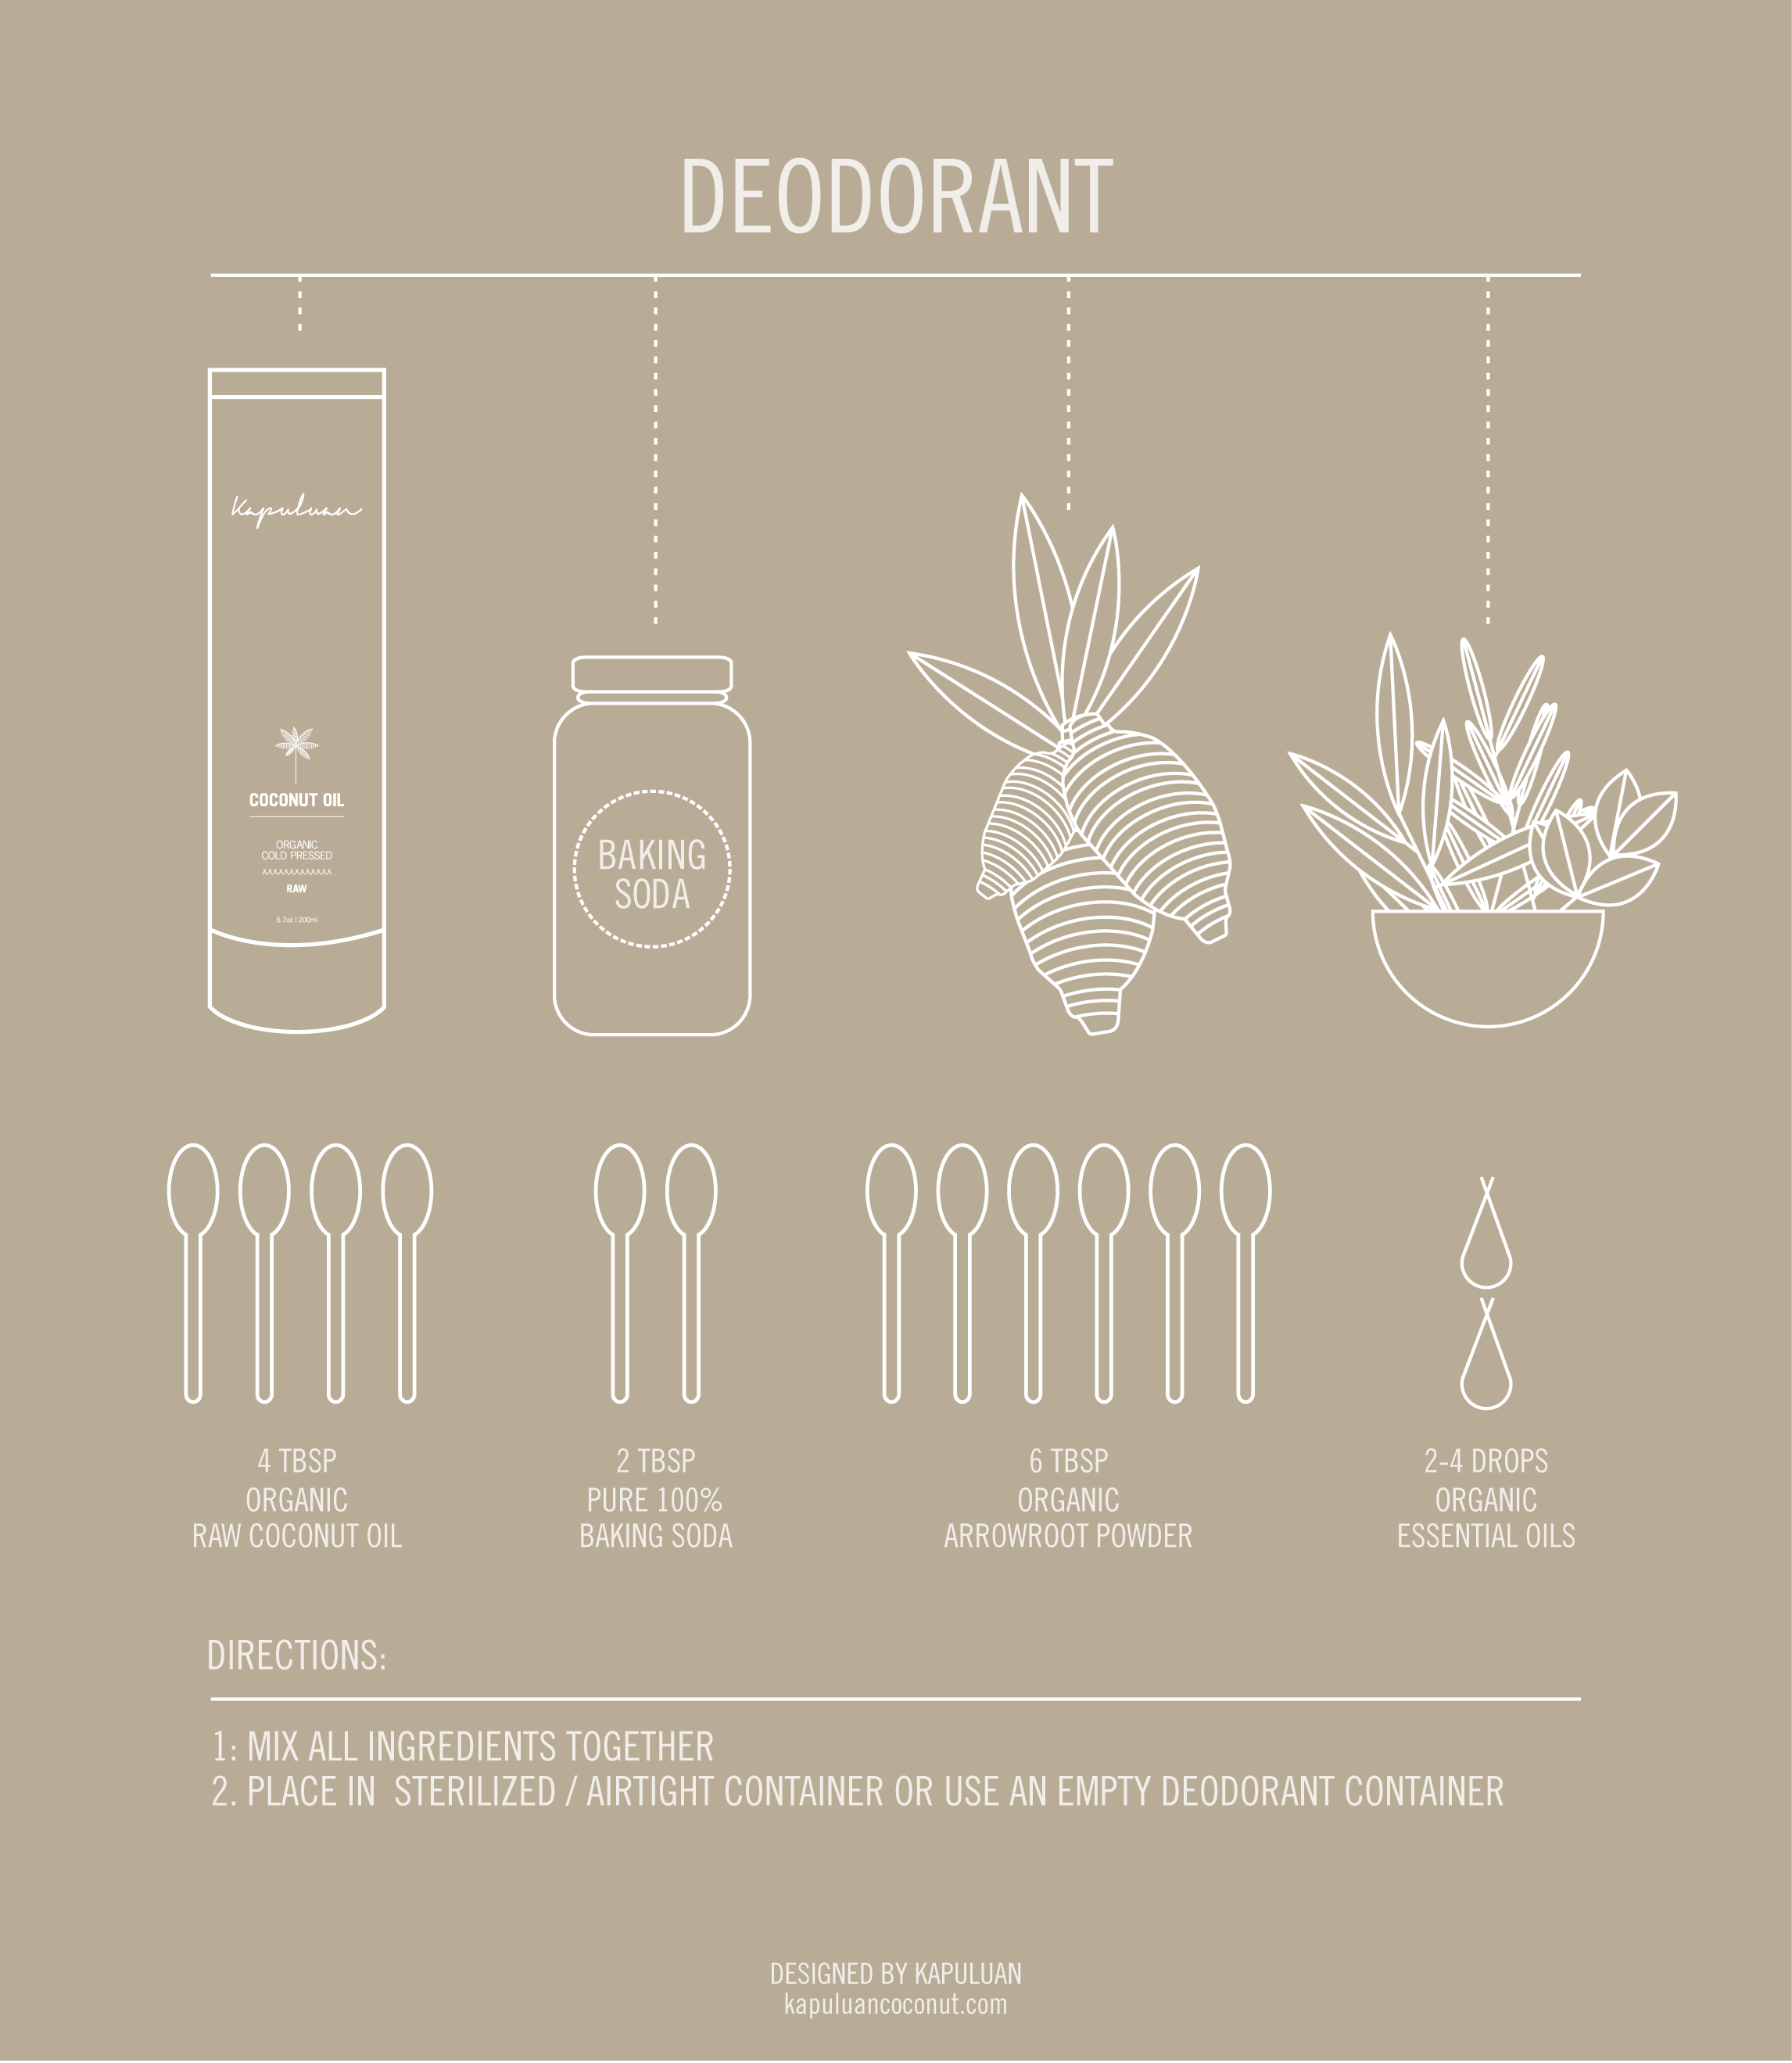 diy coconut oil deodorant using Kapuluan coconut oil